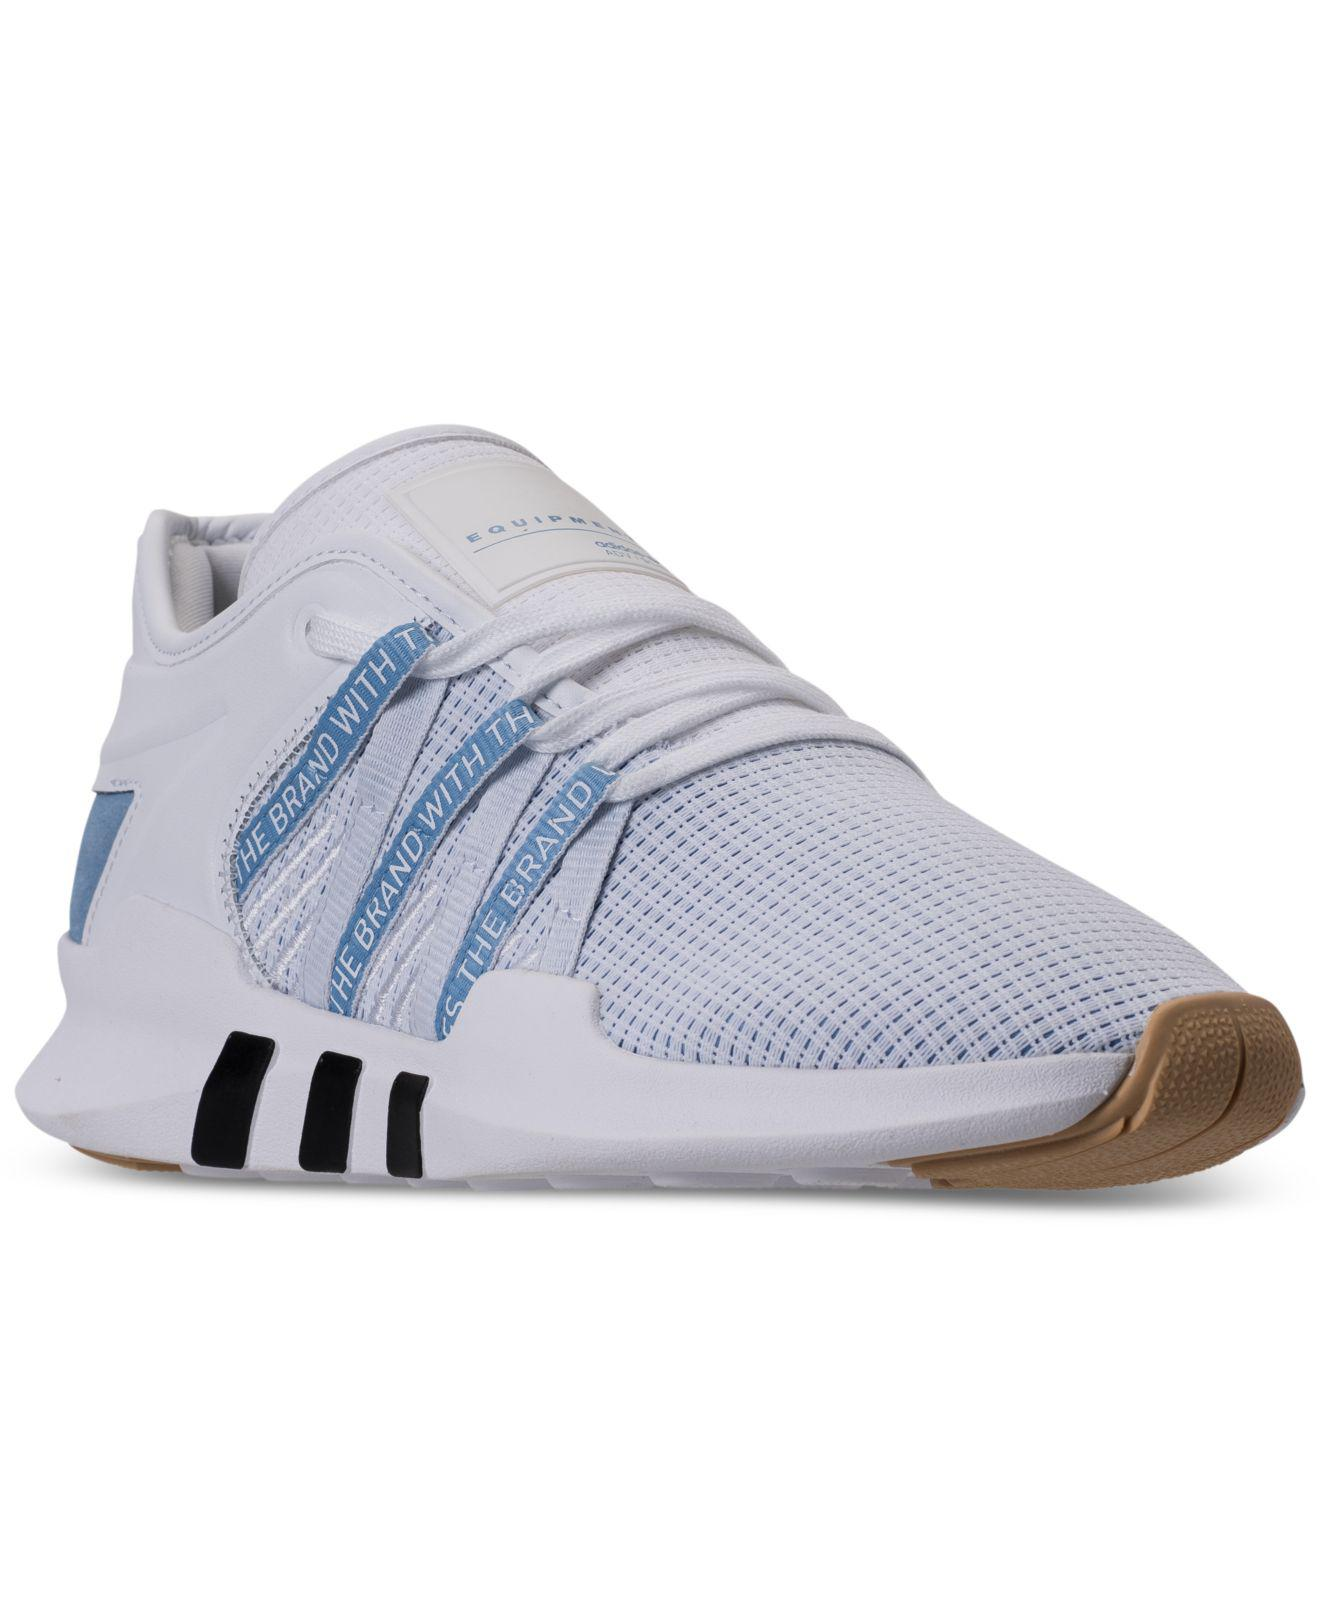 watch b8394 cbf37 Lyst - adidas Womens Eqt Racing Adv Casual Sneakers From Fin